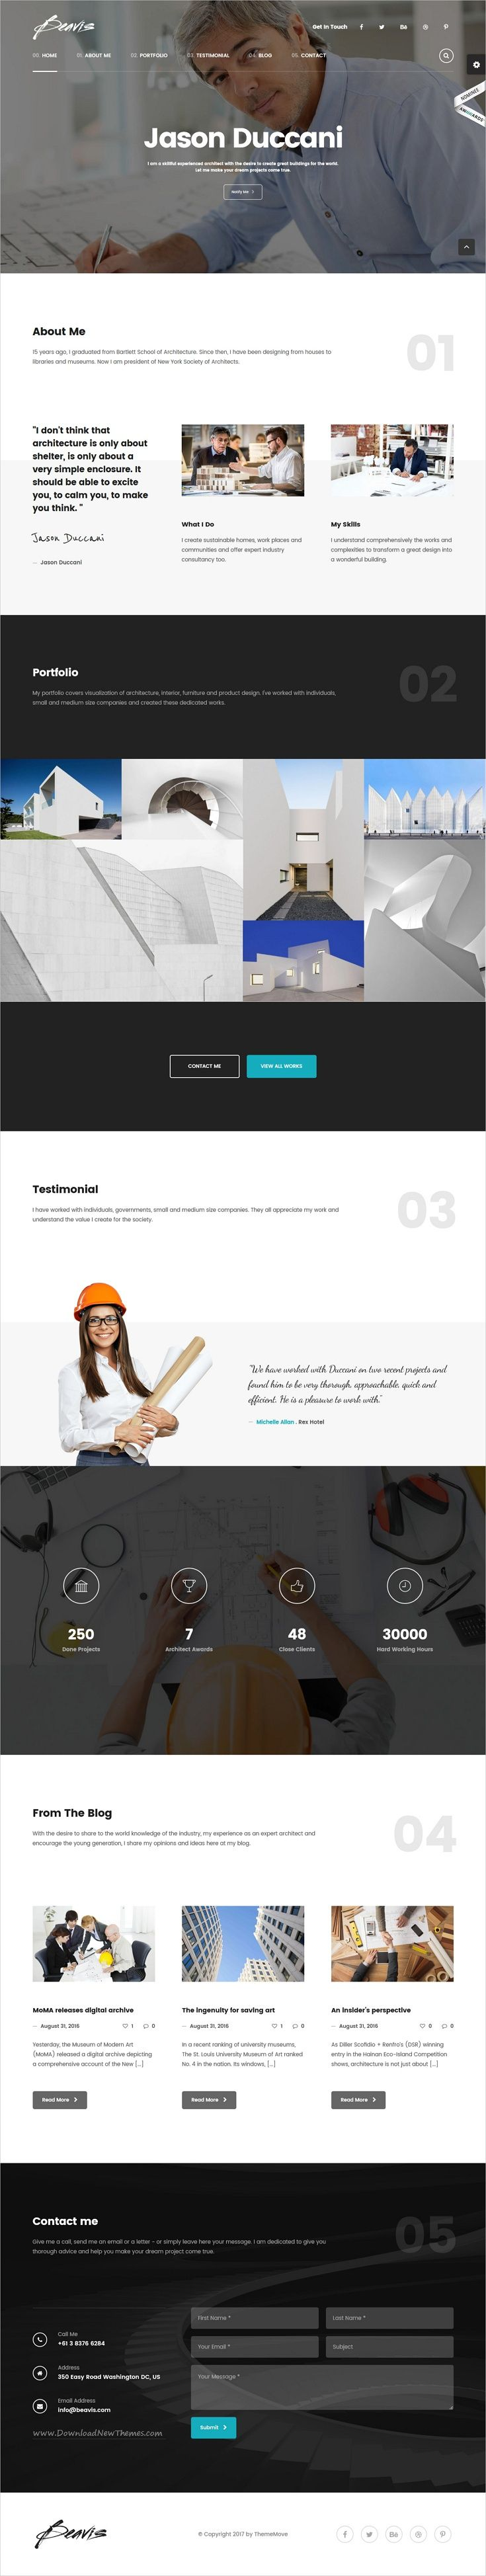 Beavis is an awesome responsive #WordPress theme for creative #architects #portfolio showcase website with 30+ multipurpose homepage layouts download now➩ https://themeforest.net/item/beavis-enterprise-multipurpose-wordpress-theme/18122295?ref=Datasata